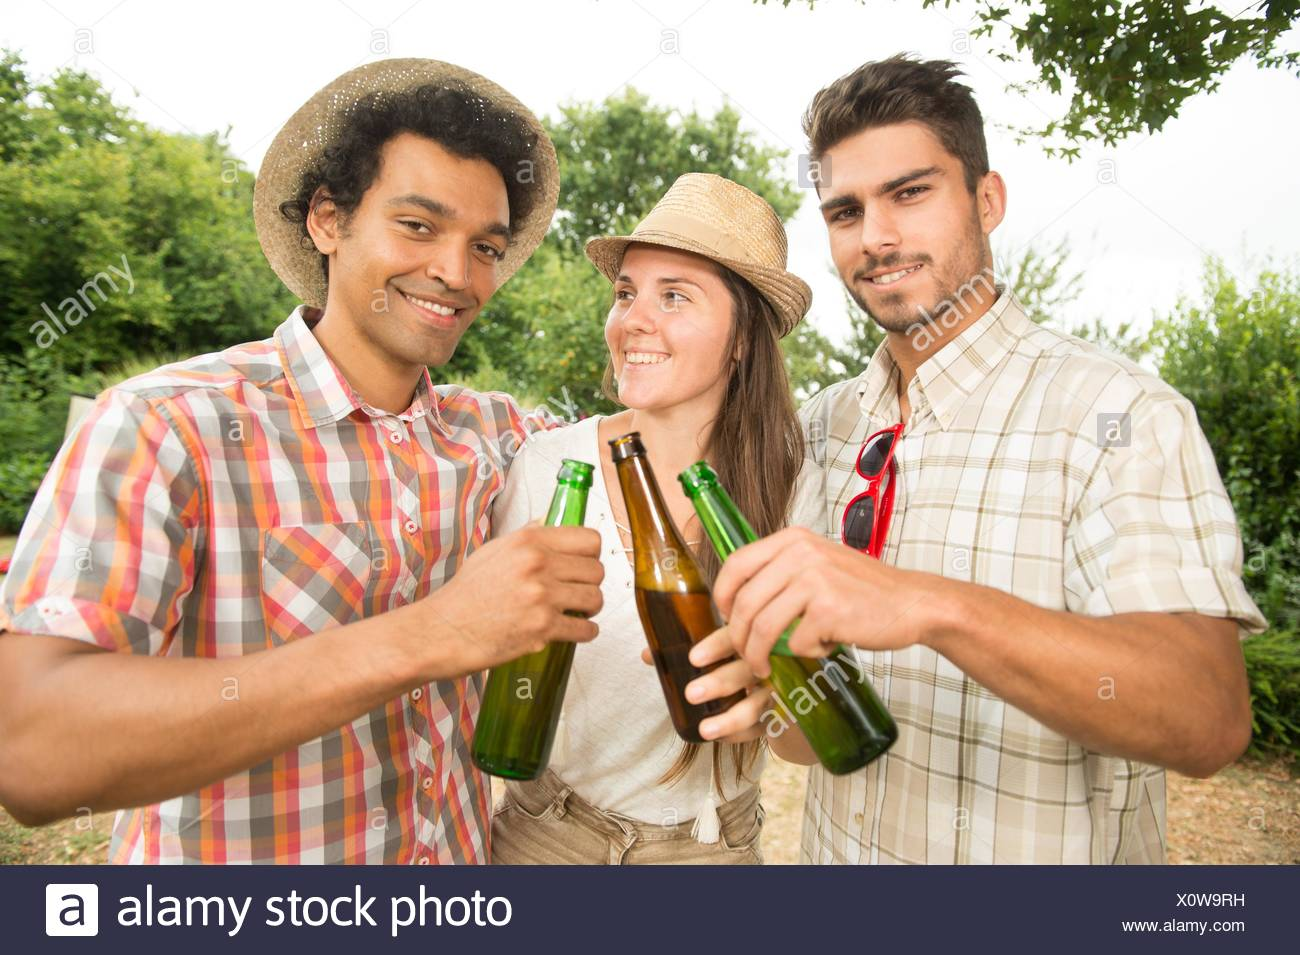 Group of friends toasting a beer bottle while preparing barbecue grill in park, France. Stock Photo